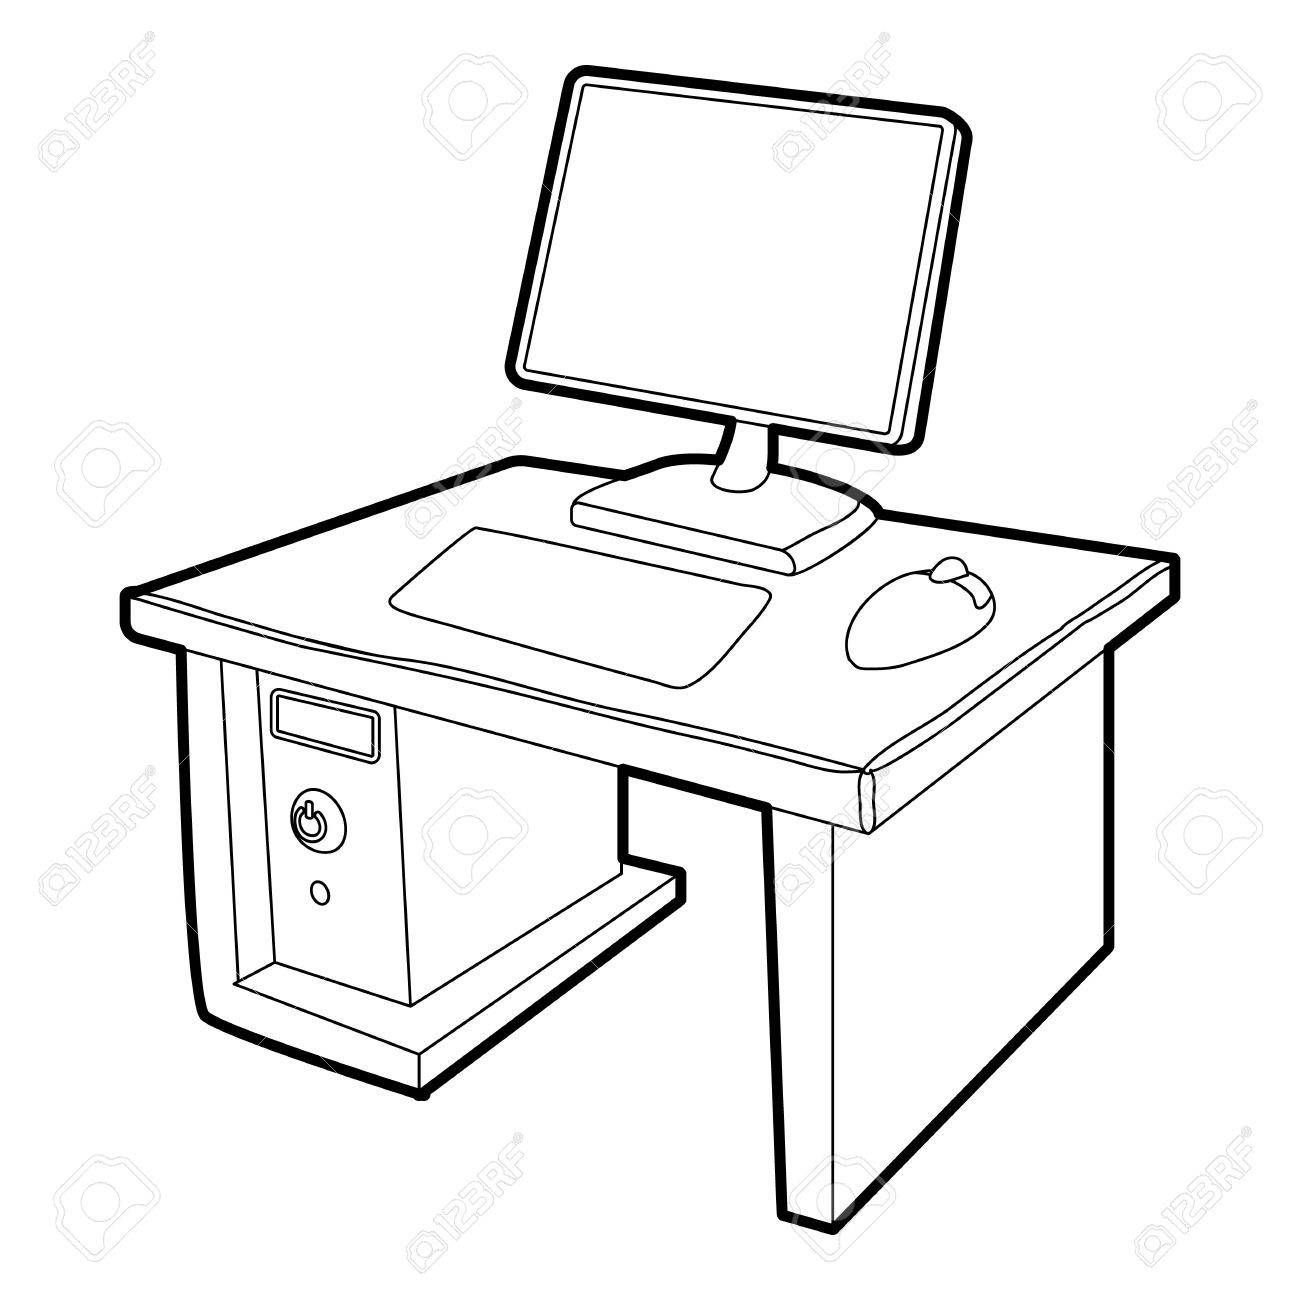 Computer Desk Drawing At Getdrawings